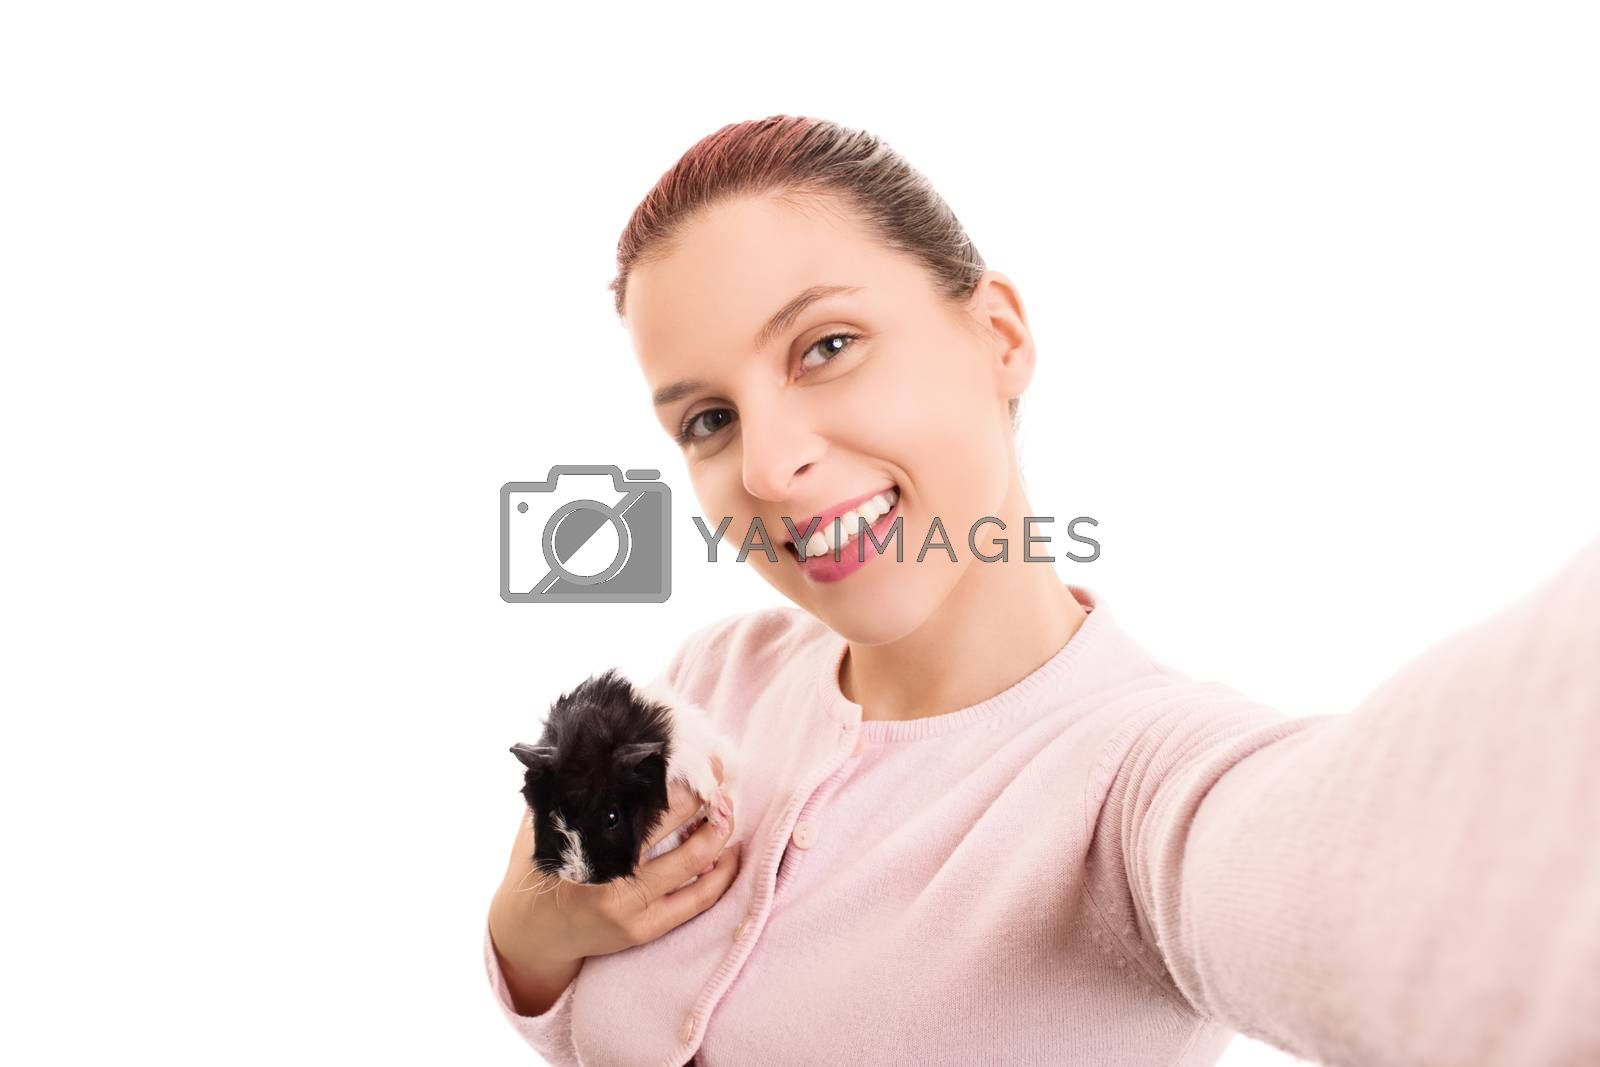 Smiling beautiful young girl with her pet guinea pig taking a selfie, isolated on white background.